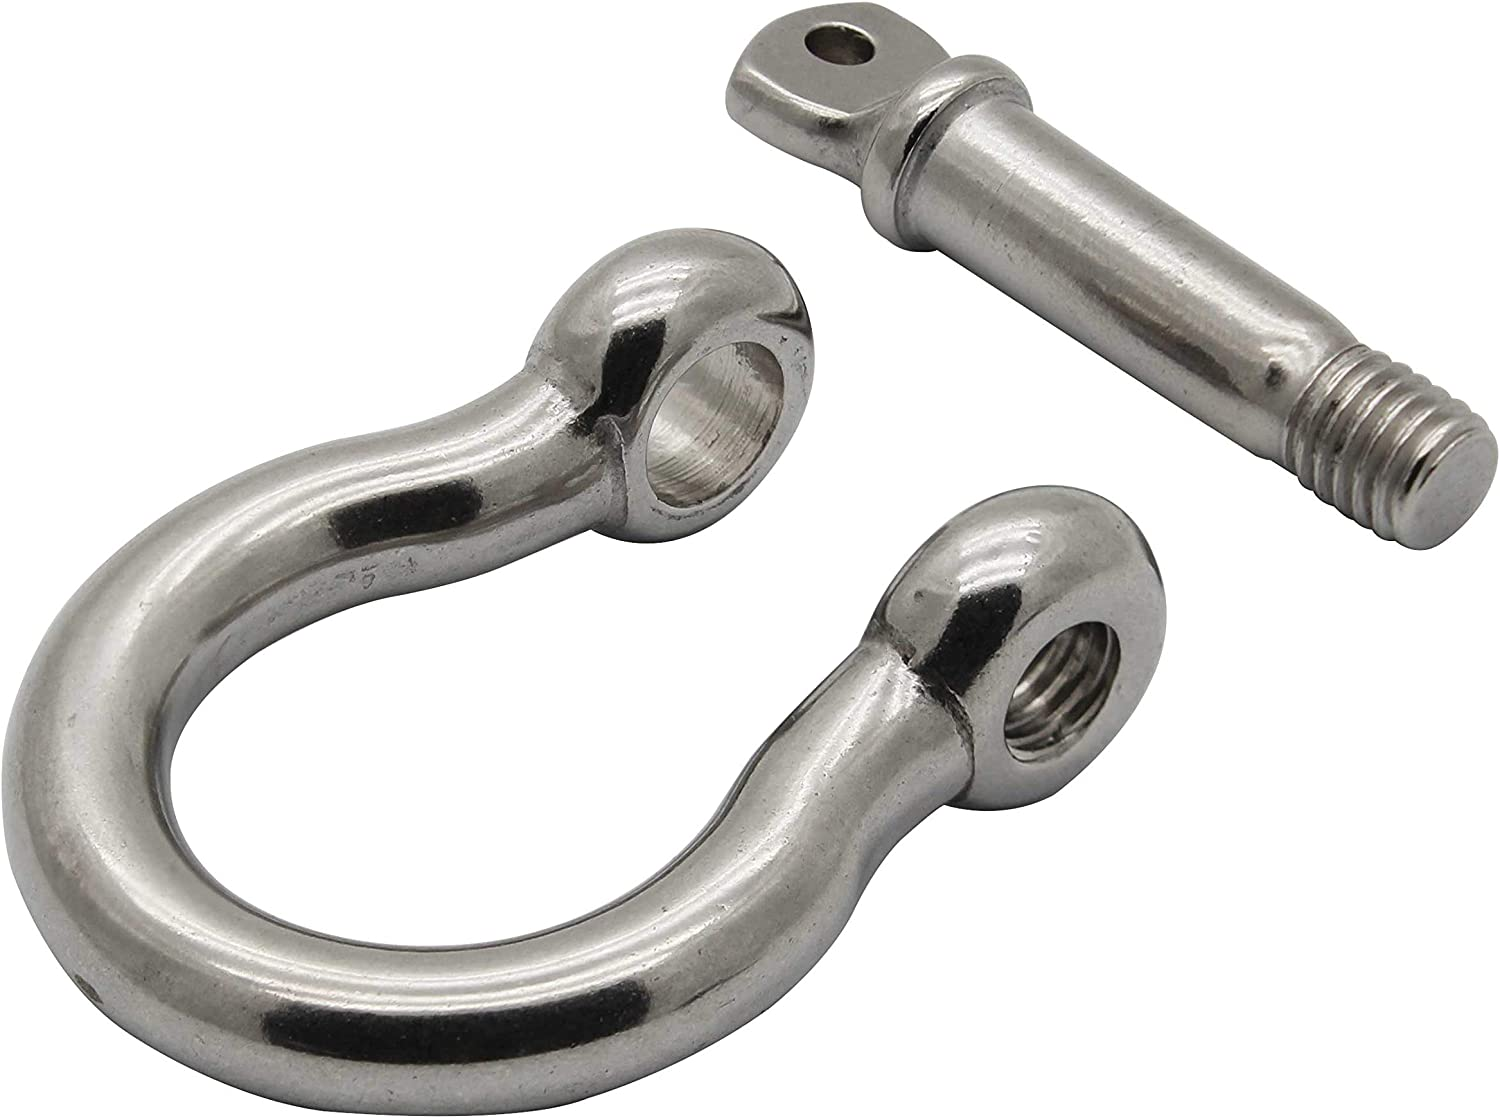 Extreme Max 3006.8309.2 BoatTector Stainless Steel Bow Shackle 1 2-Pack